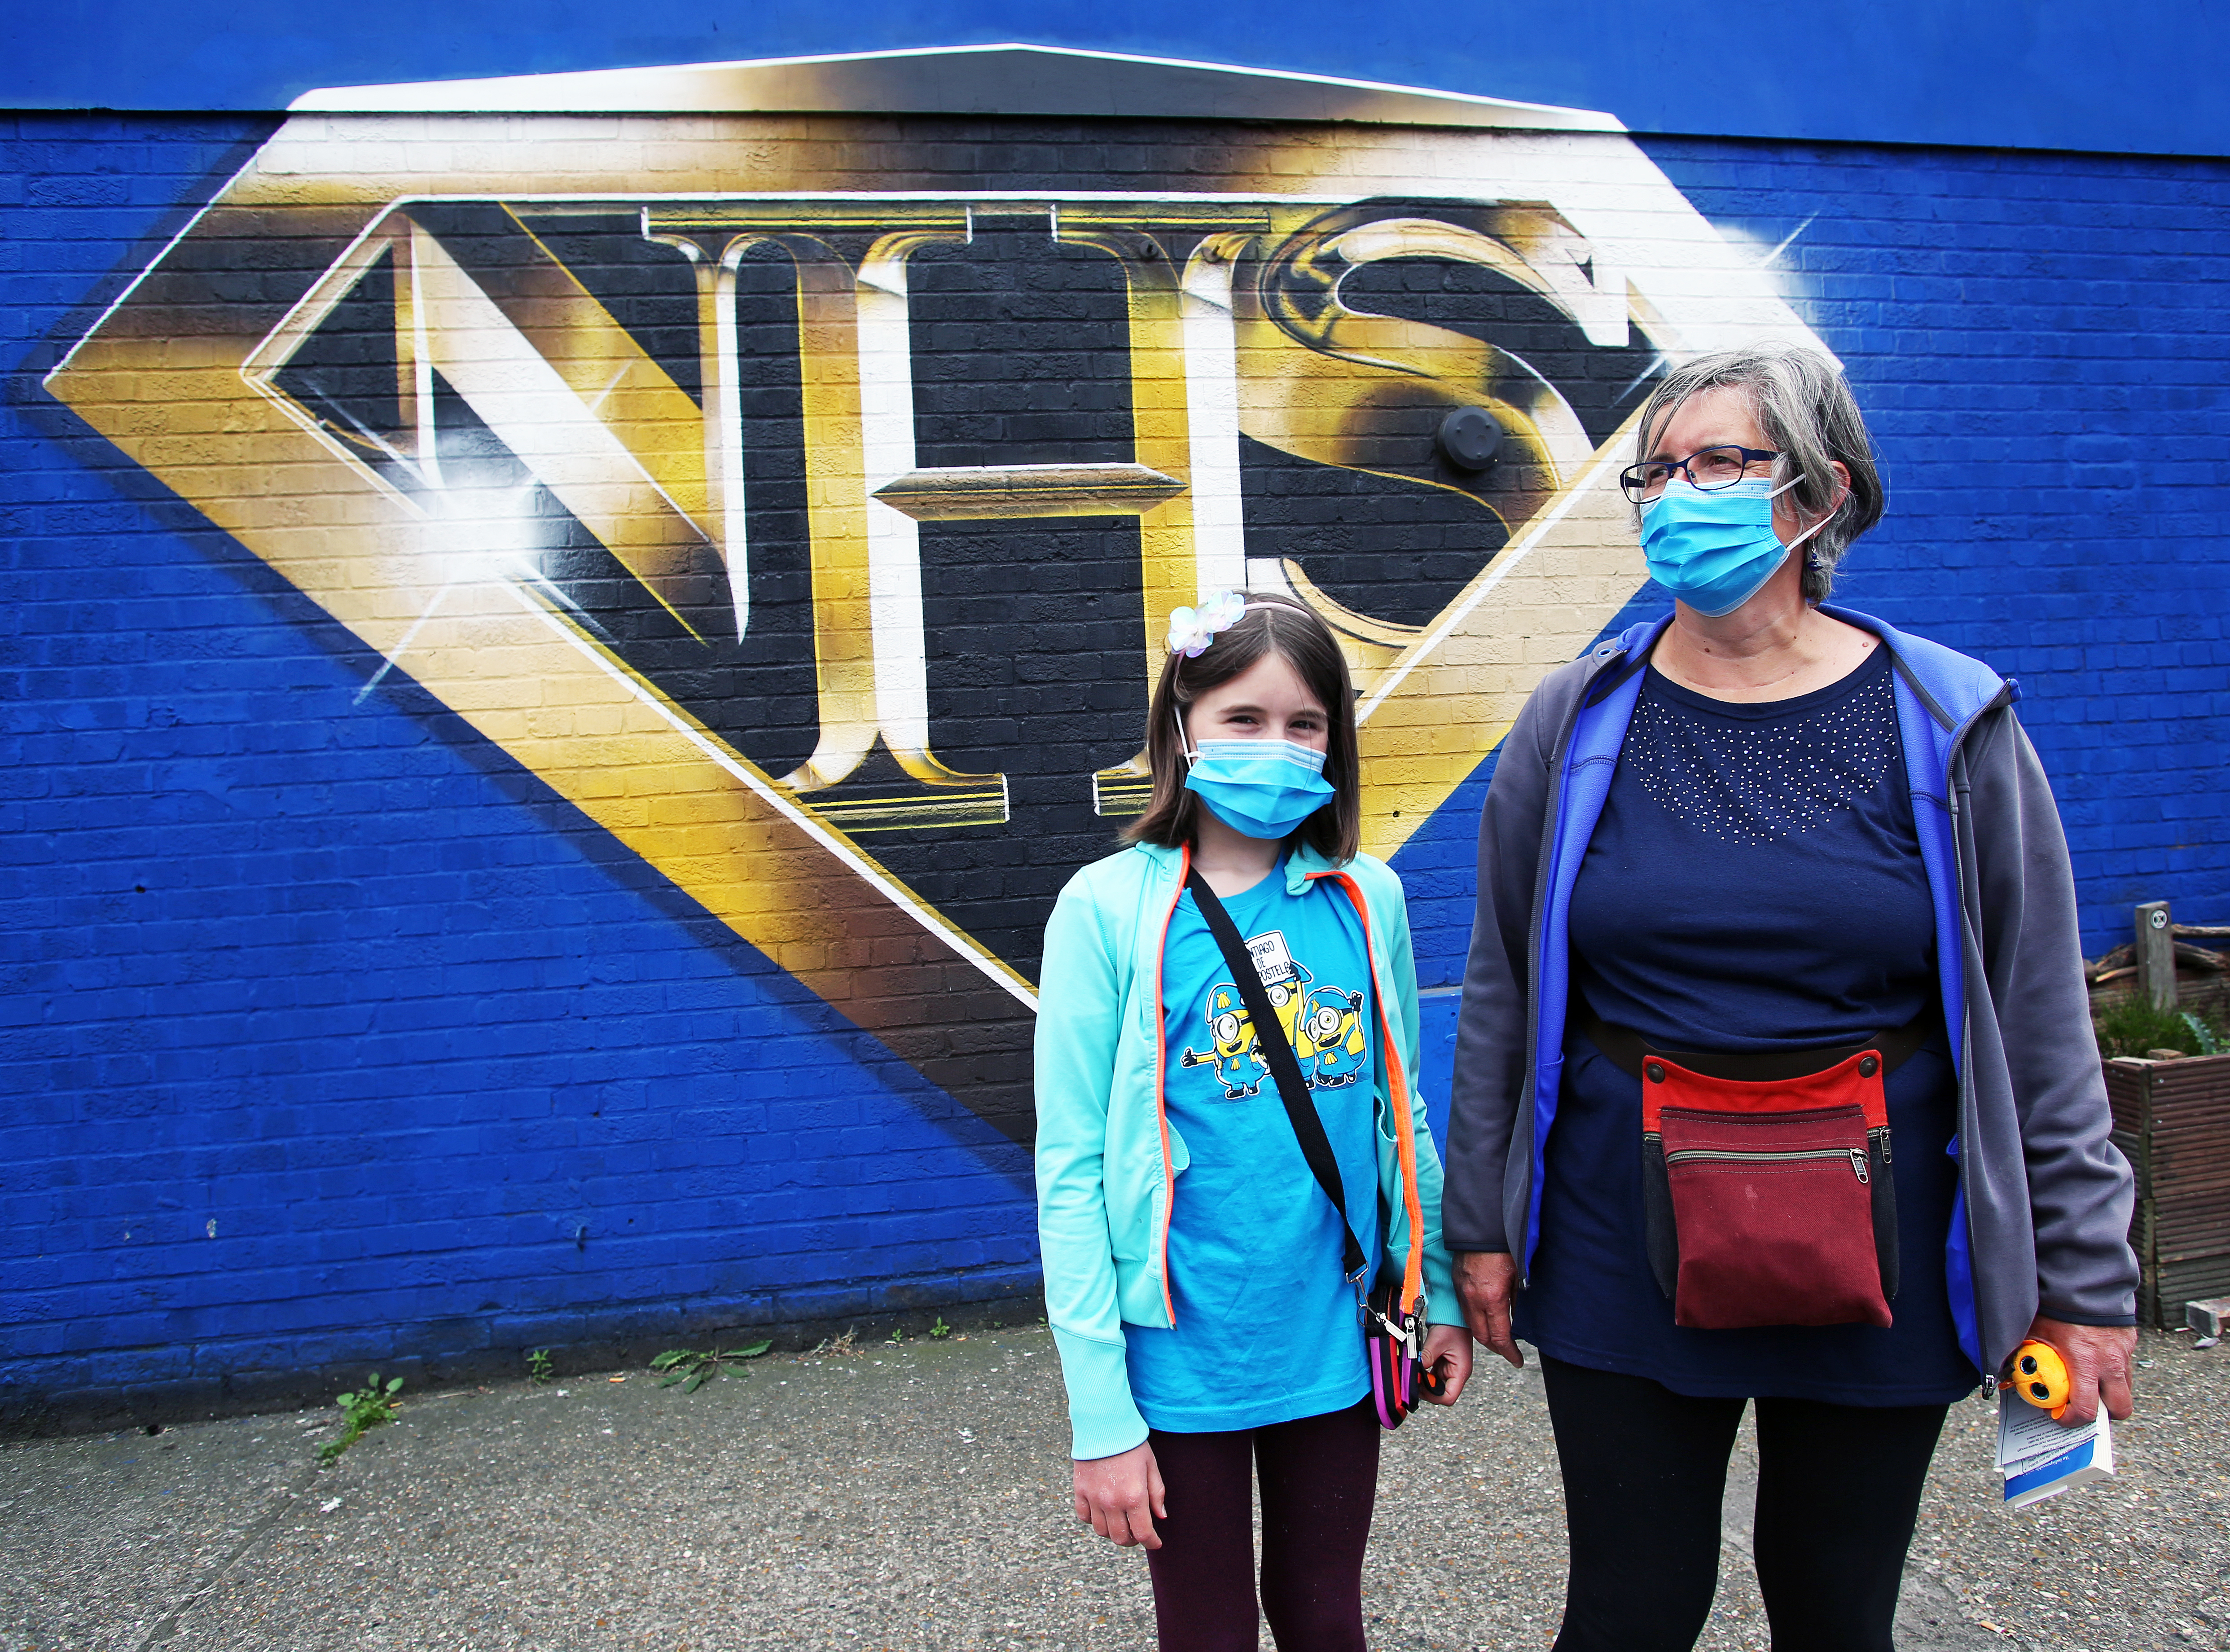 An NHS worker and her daughter, who both wear protective masks, stand in front of an NHS superman graffiti that pays tribute to NHS workers on a wall in Tulse Hill, London, as the UK continues to recover from the coronavirus pandemic.